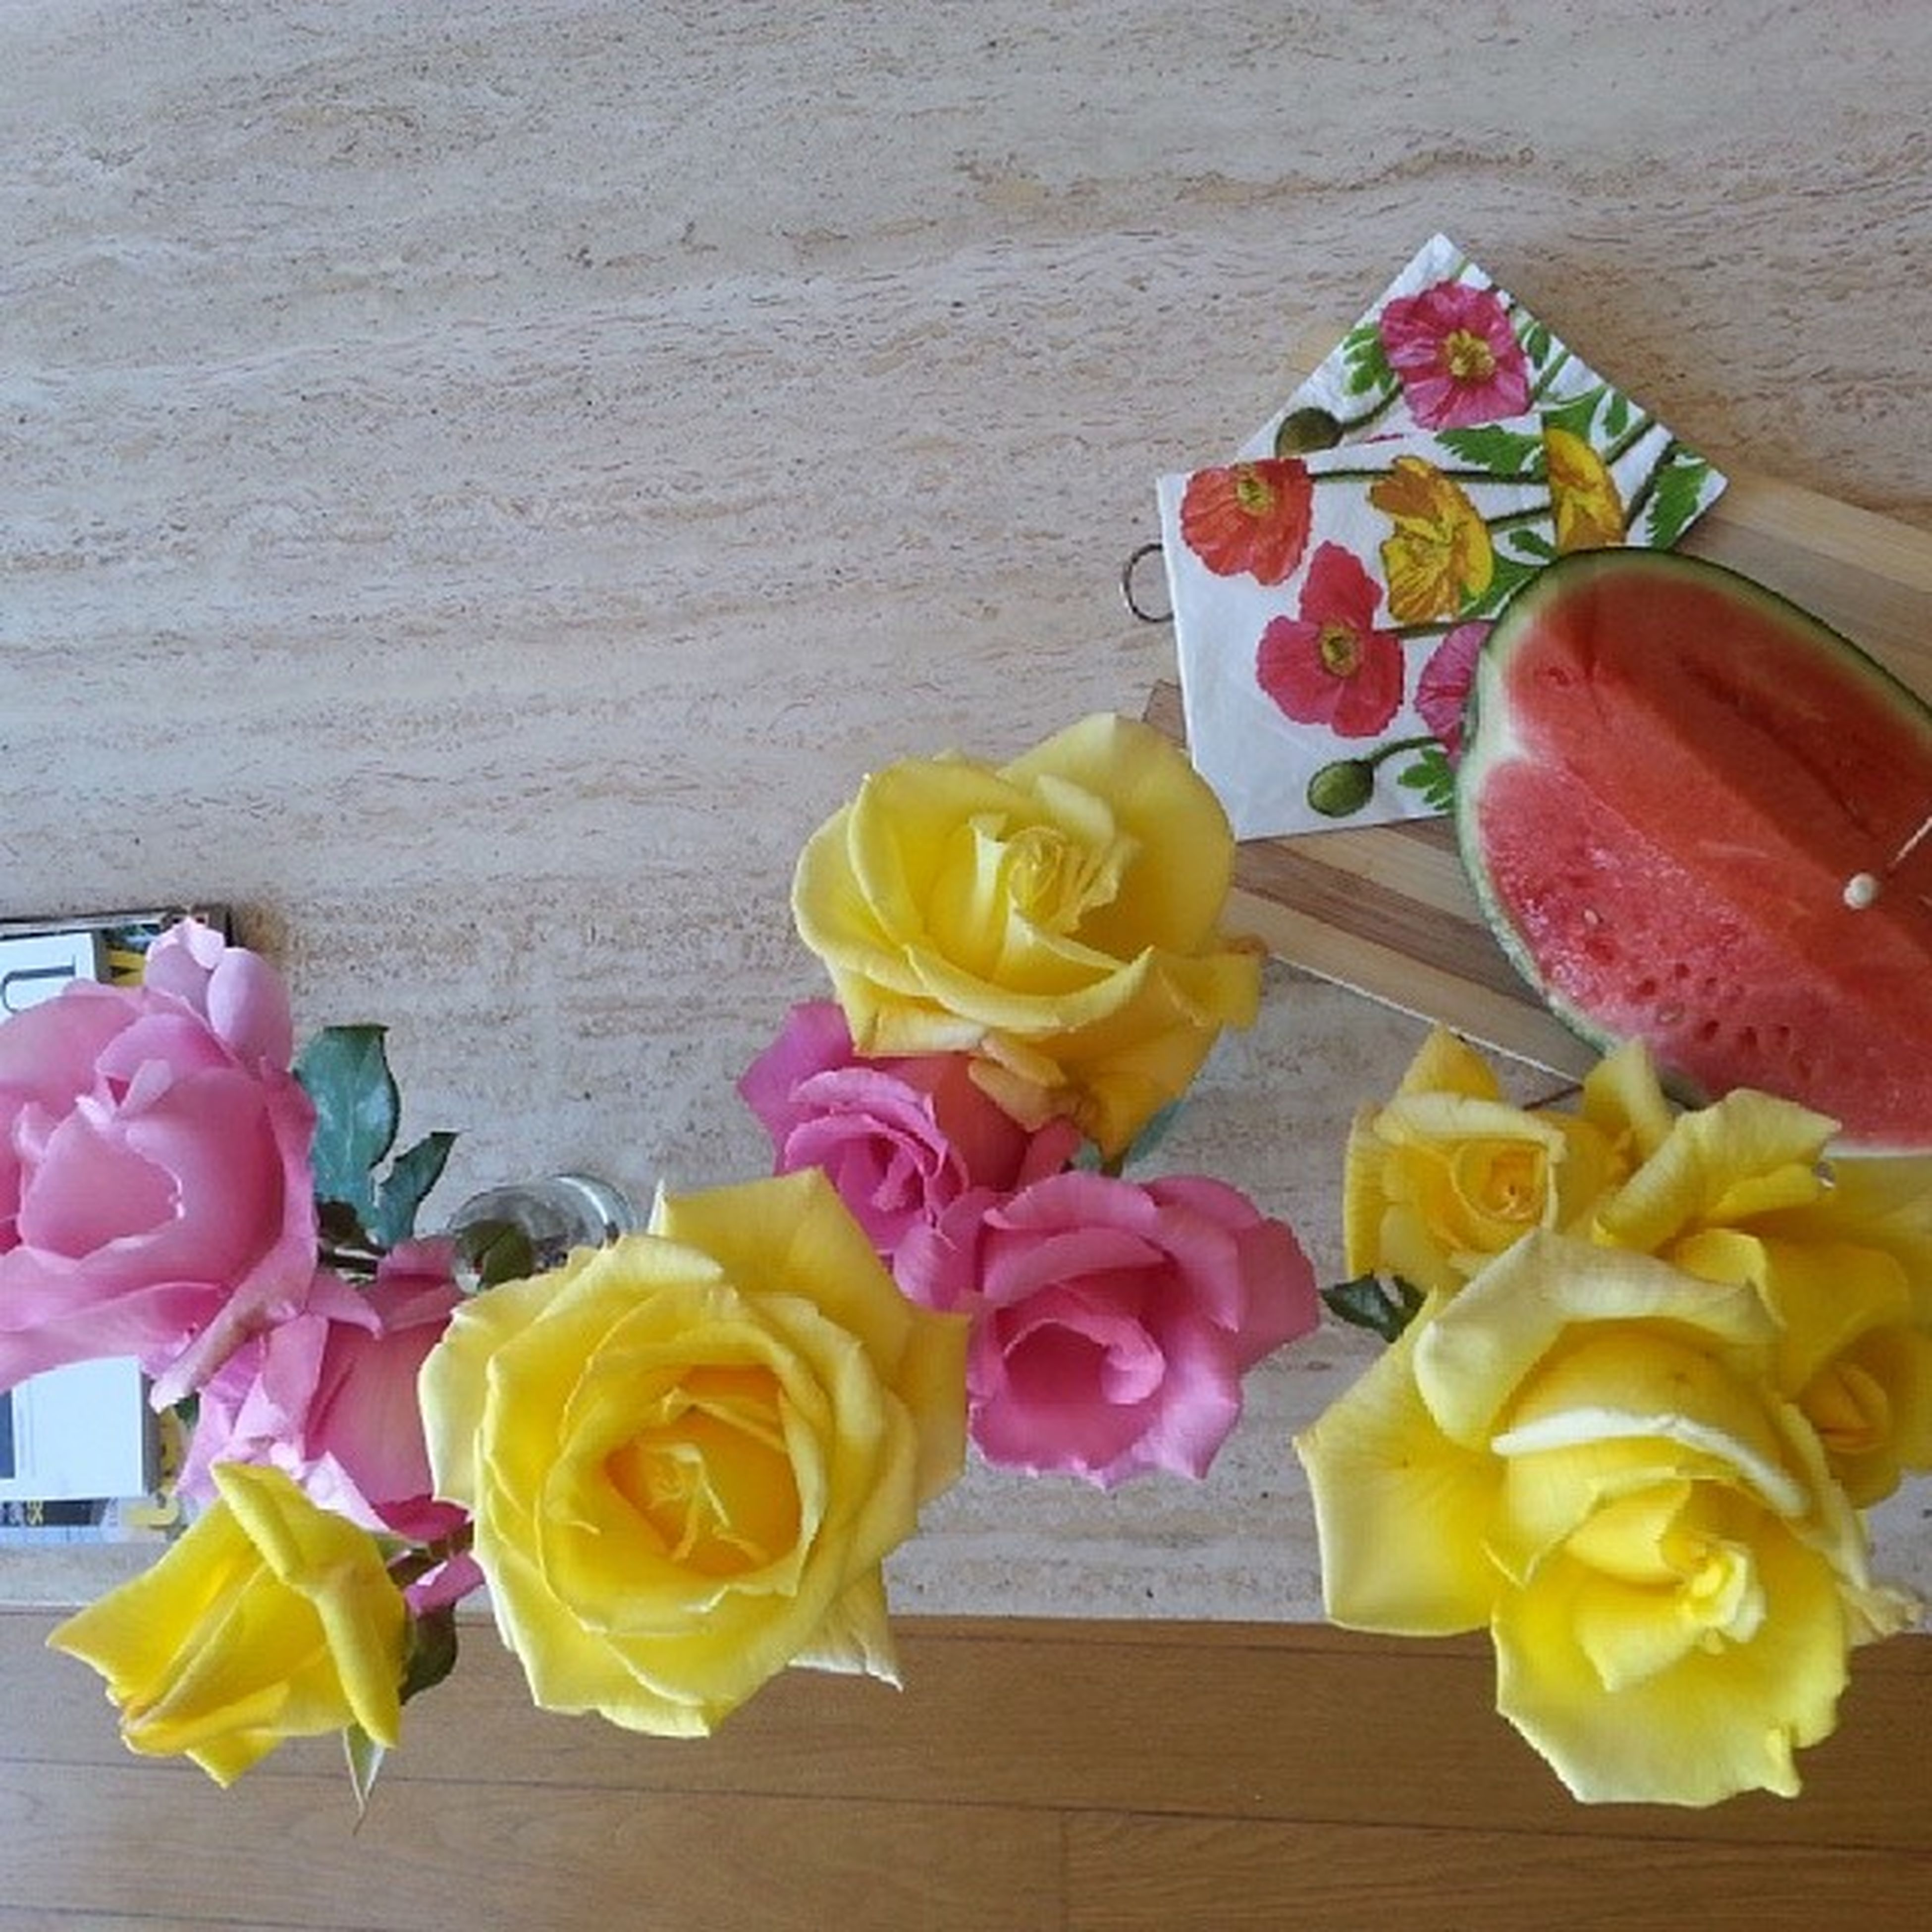 freshness, flower, yellow, table, still life, multi colored, food and drink, indoors, petal, variation, food, high angle view, fragility, flower head, sweet food, rose - flower, vase, fruit, close-up, no people